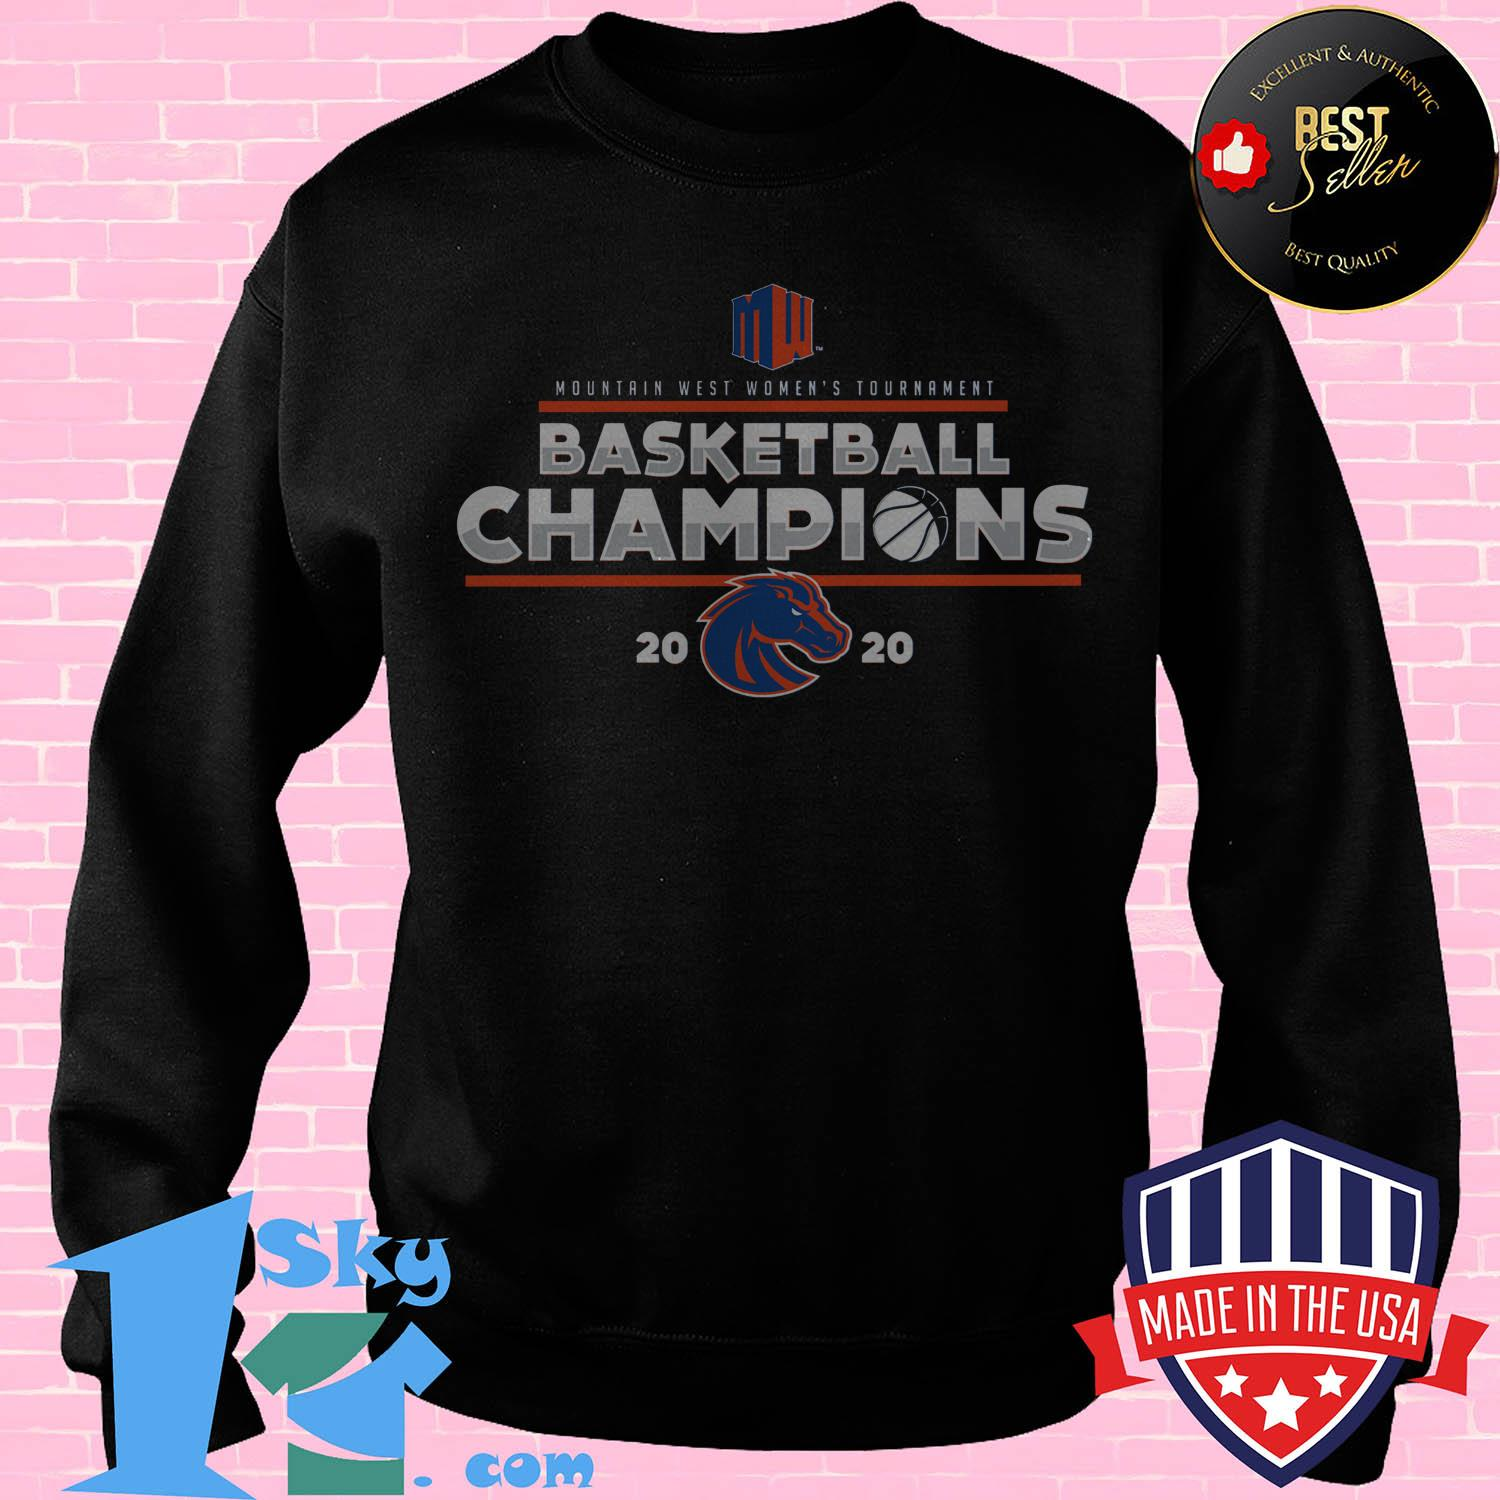 mountain west womens basketball conference tournament champions 2020 Sweater - Mountain West Women's Basketball Conference Tournament Champions 2020 Shirt